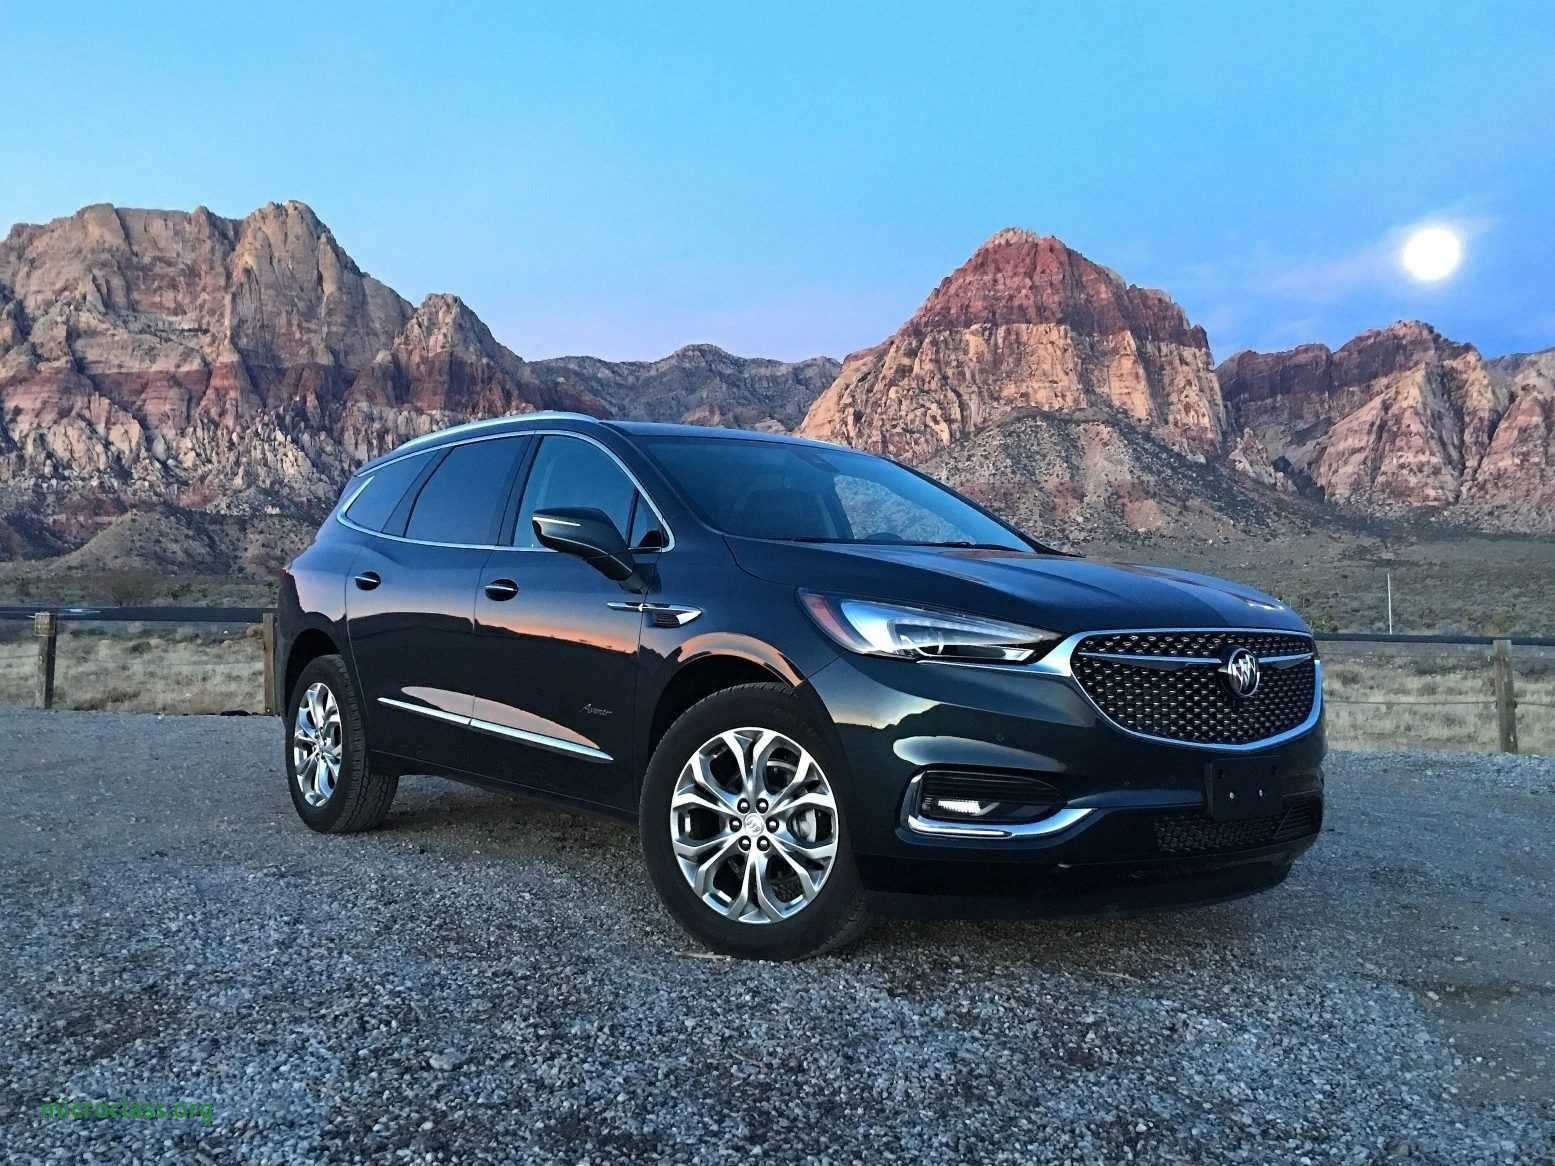 75 New 2019 Buick Enclave Spy Photos Concept